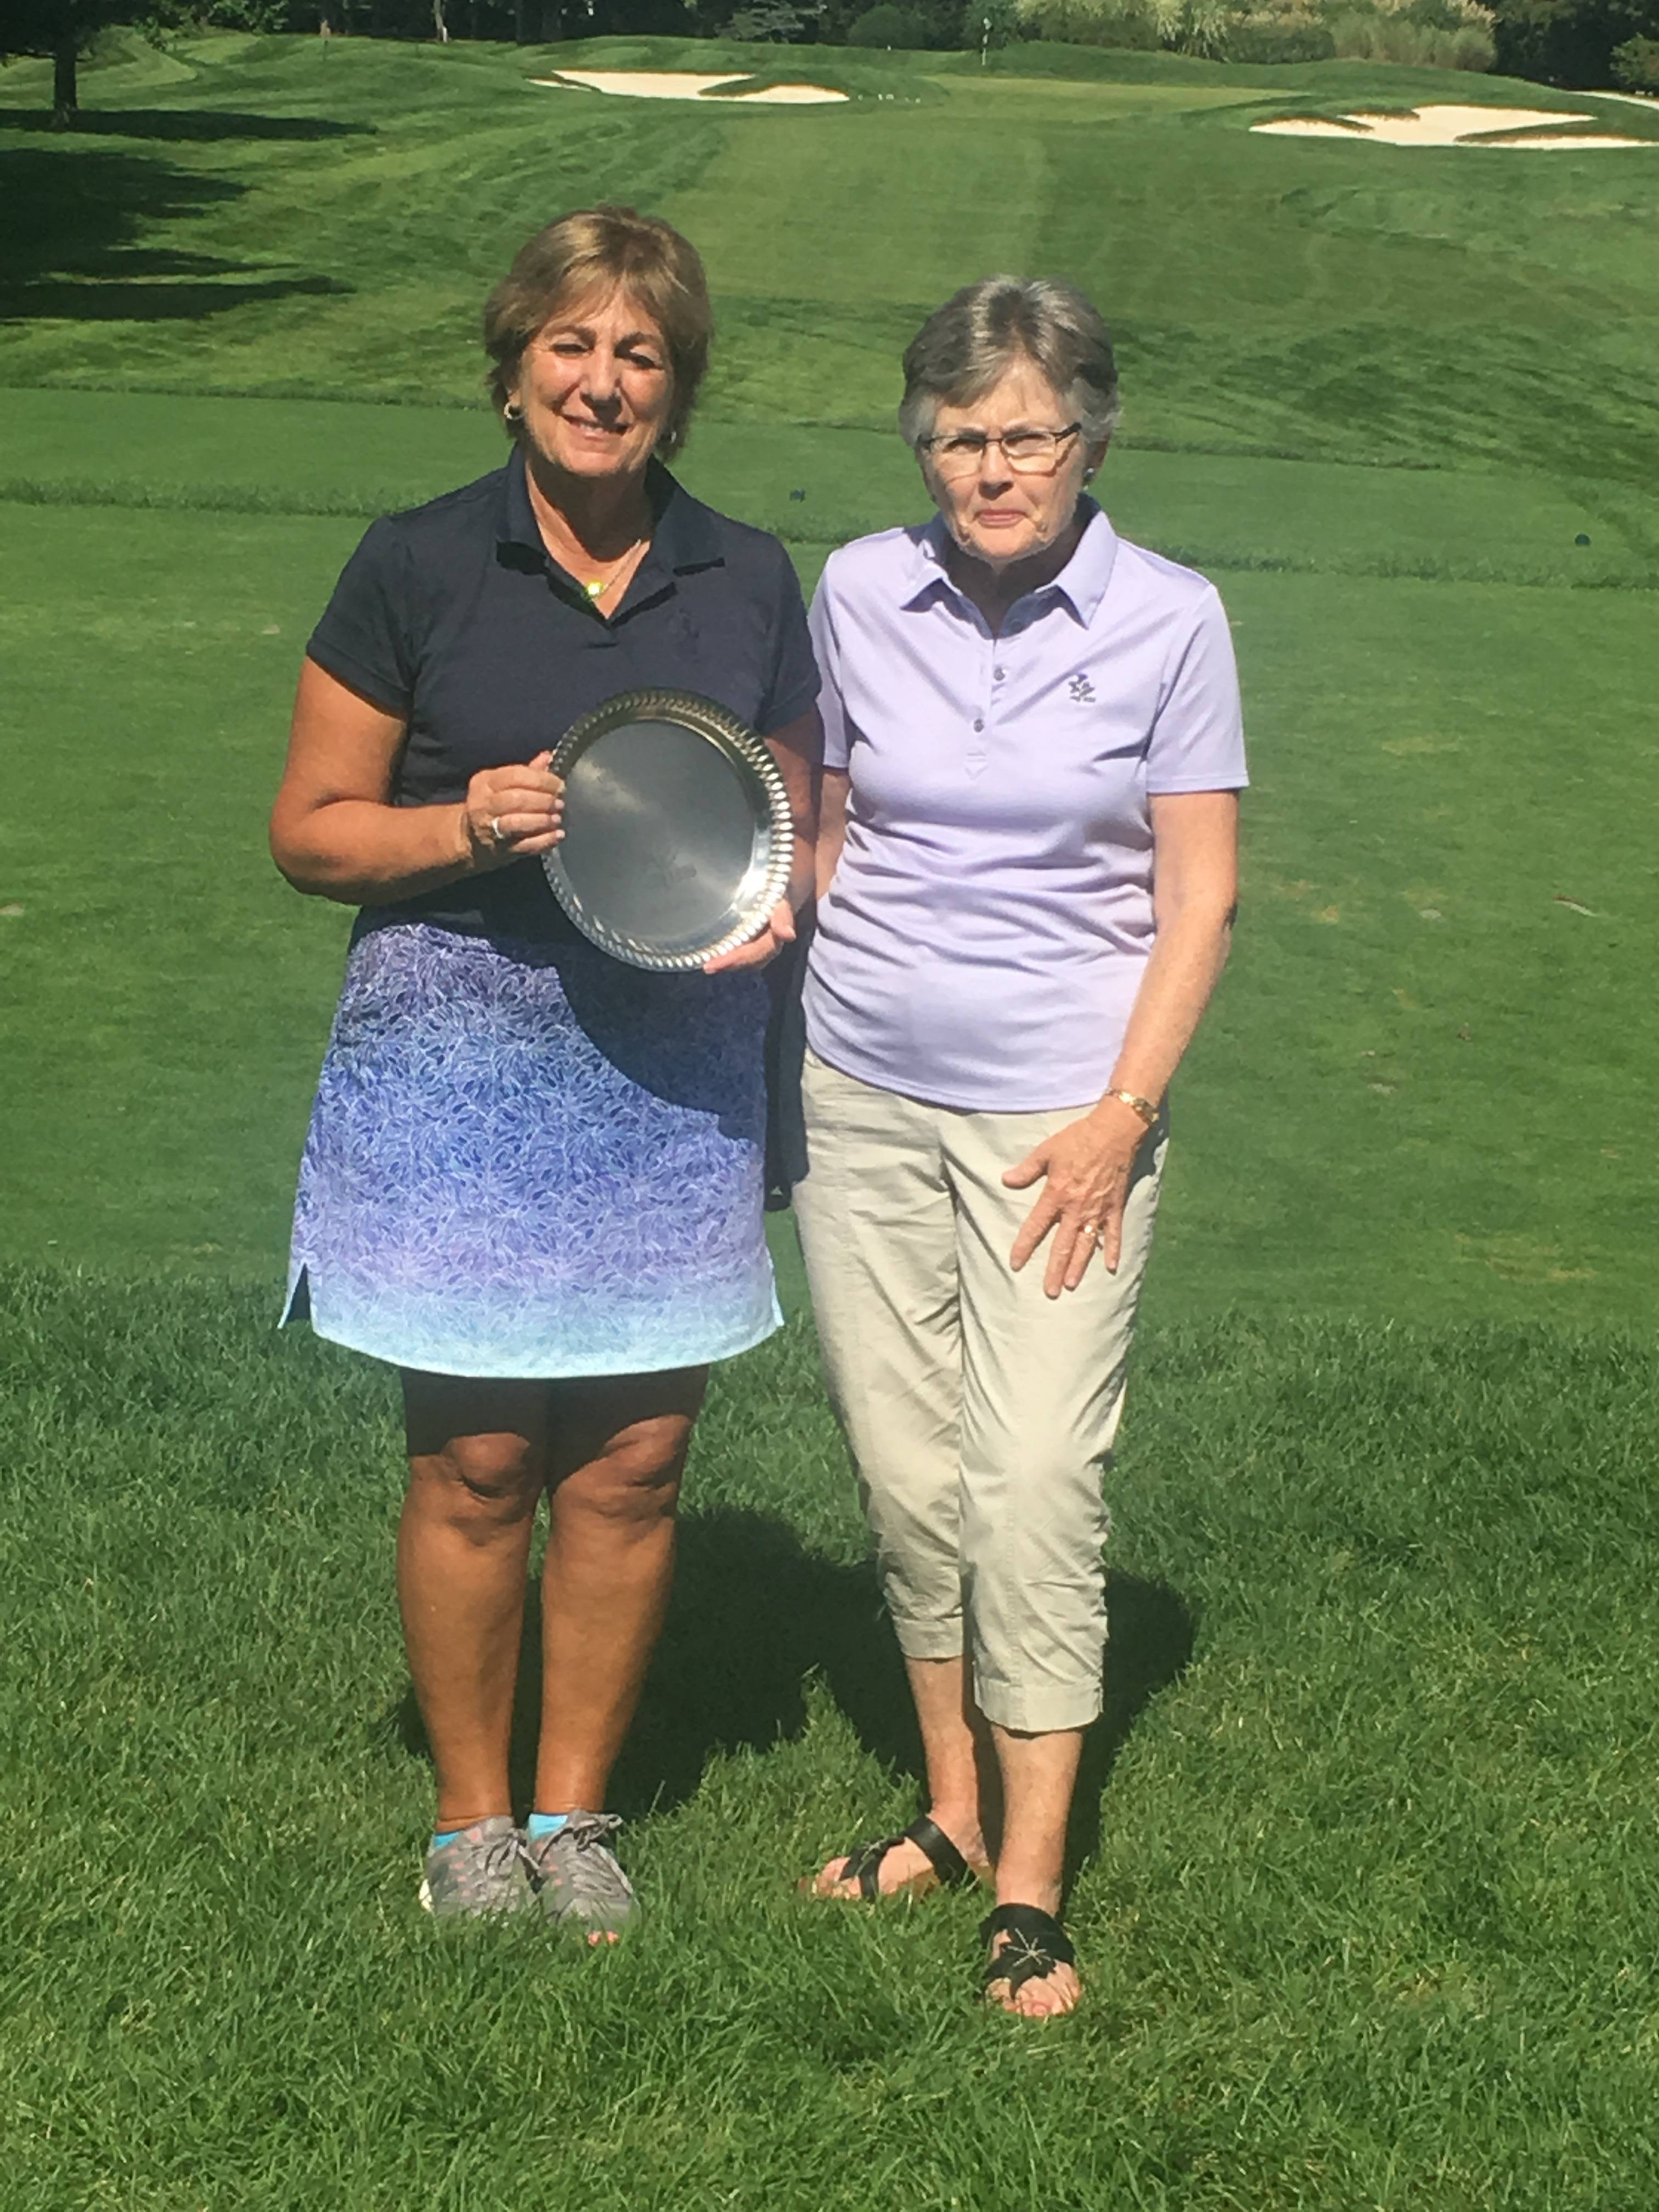 Chatham Resident Wins Madison Golf Club Women's Flight A Championship